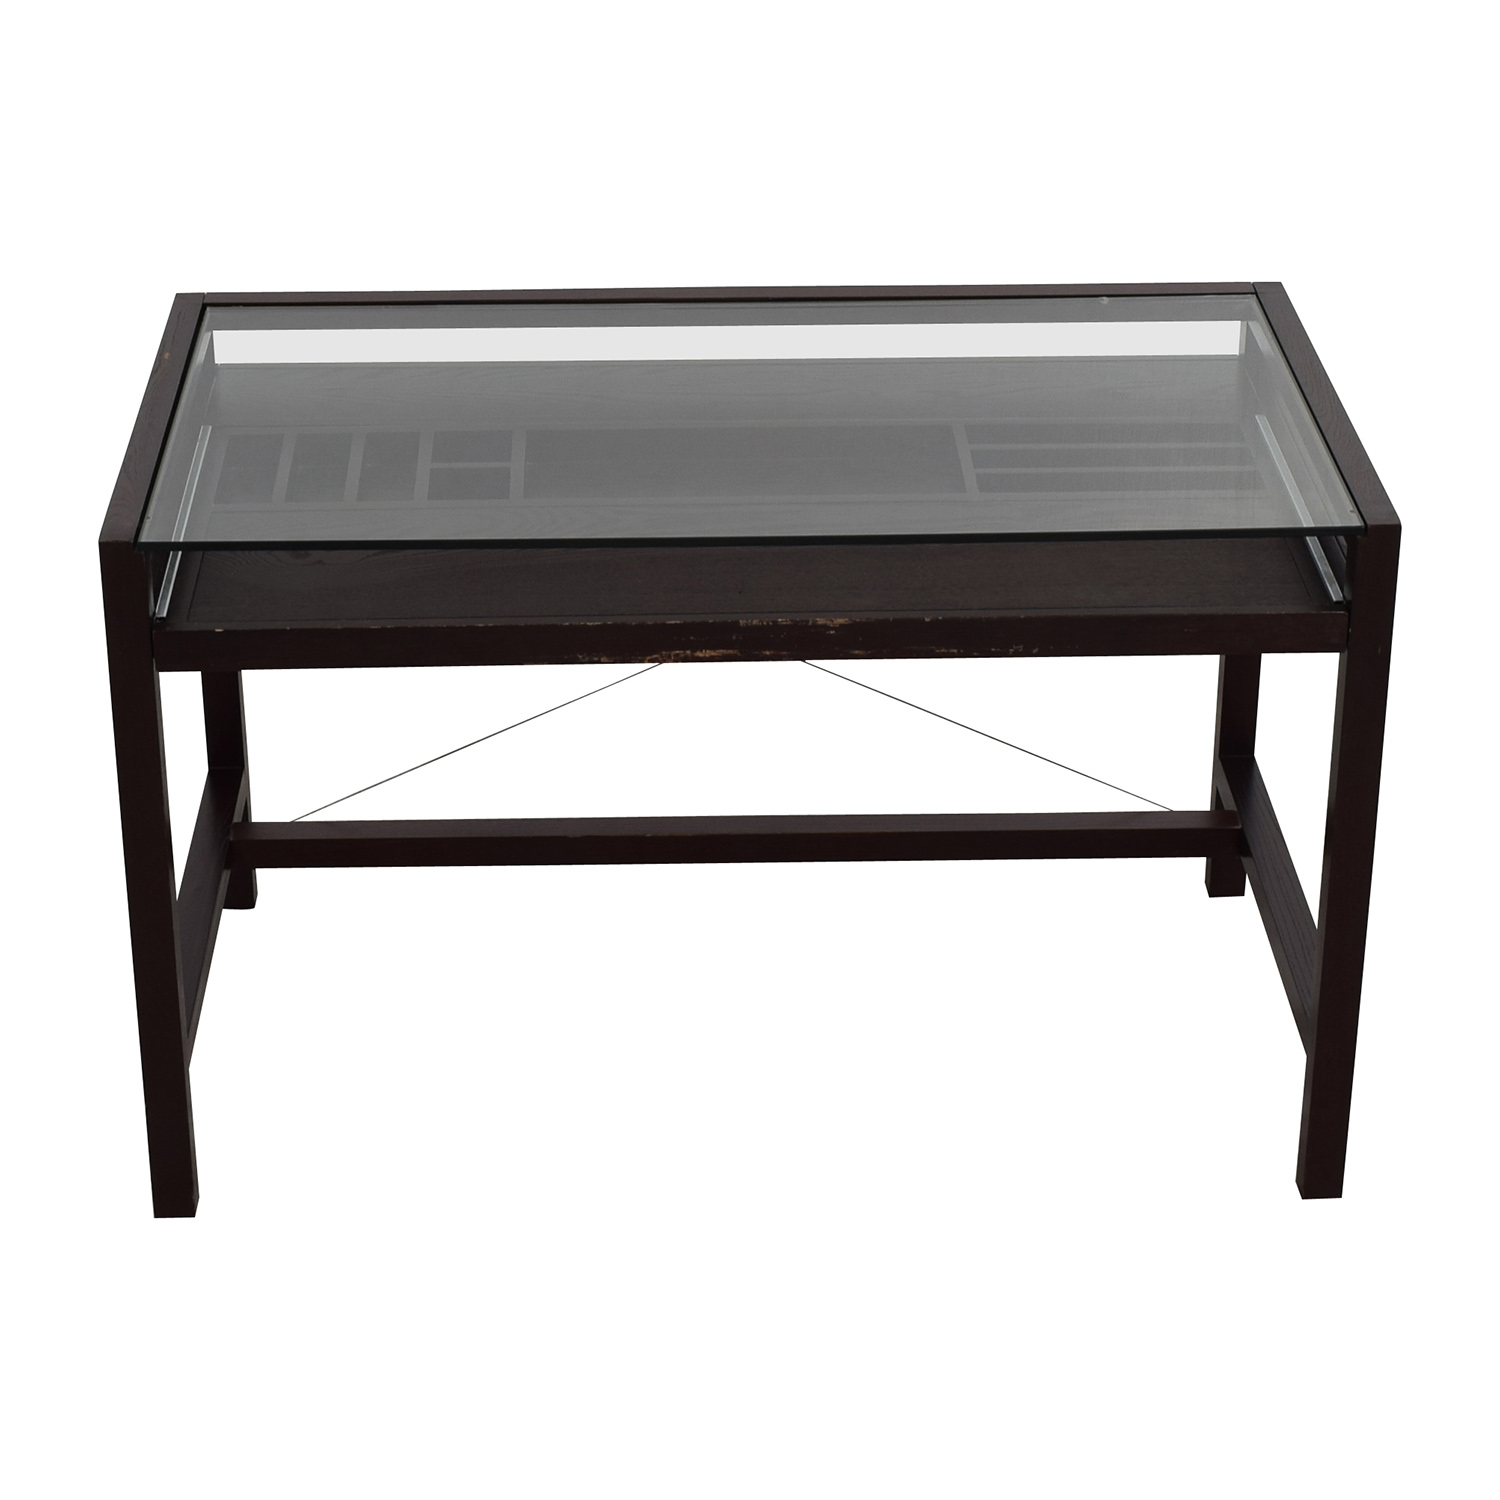 82% OFF Crate and Barrel Crate & Barrel Glass and Wood Walker